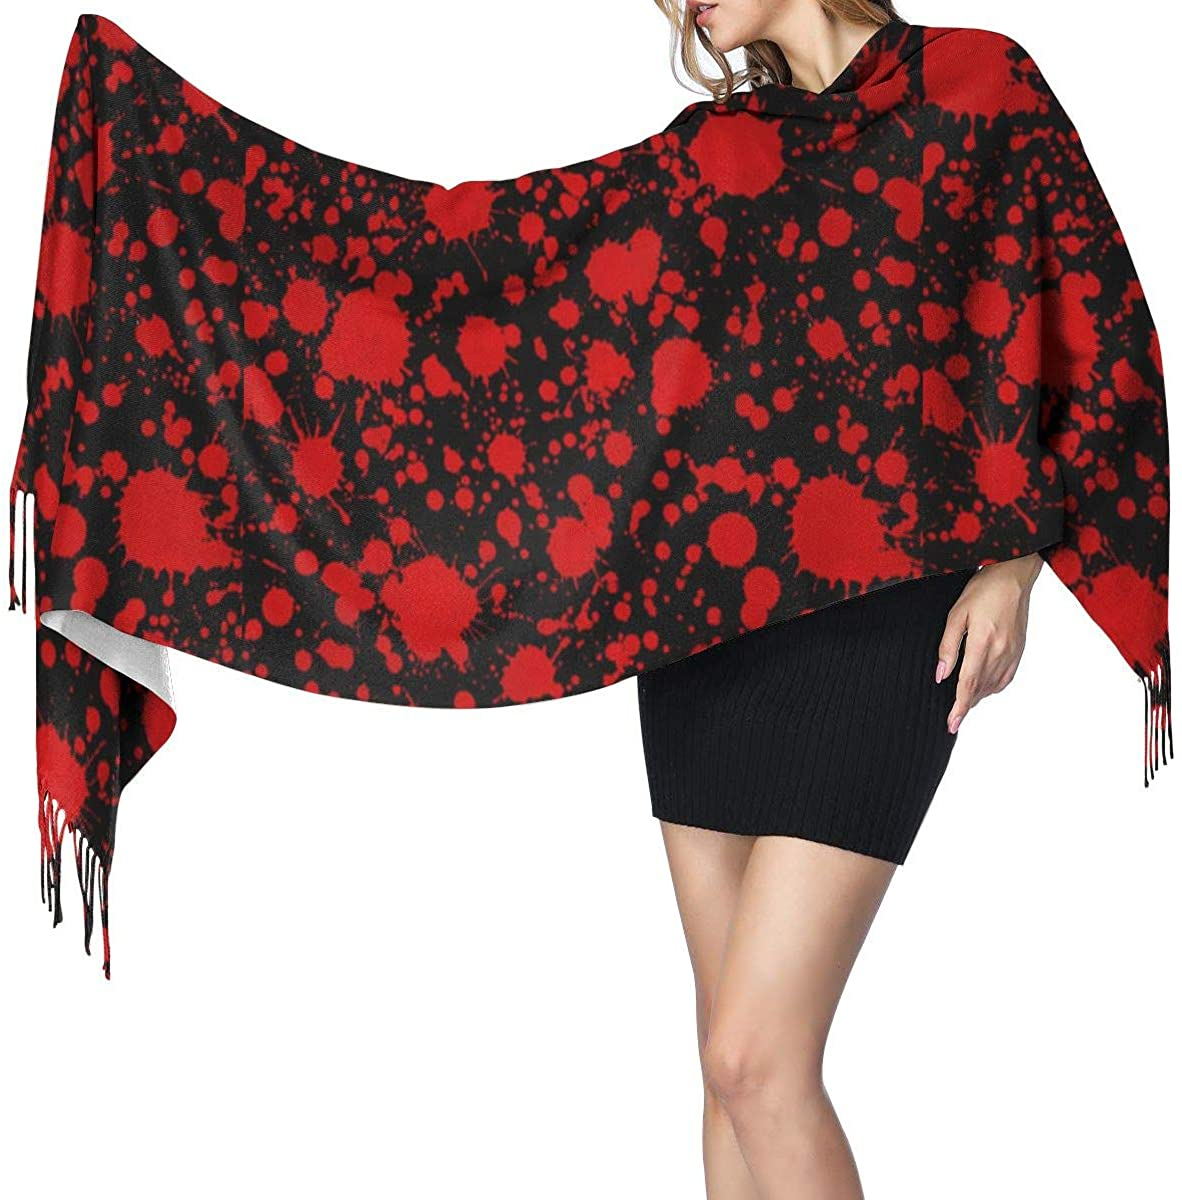 Classic Horror Blood Splatter Black Women's Winter Warm Scarf Fashion Long Large Soft Cashmere Shawl Wrap Scarves